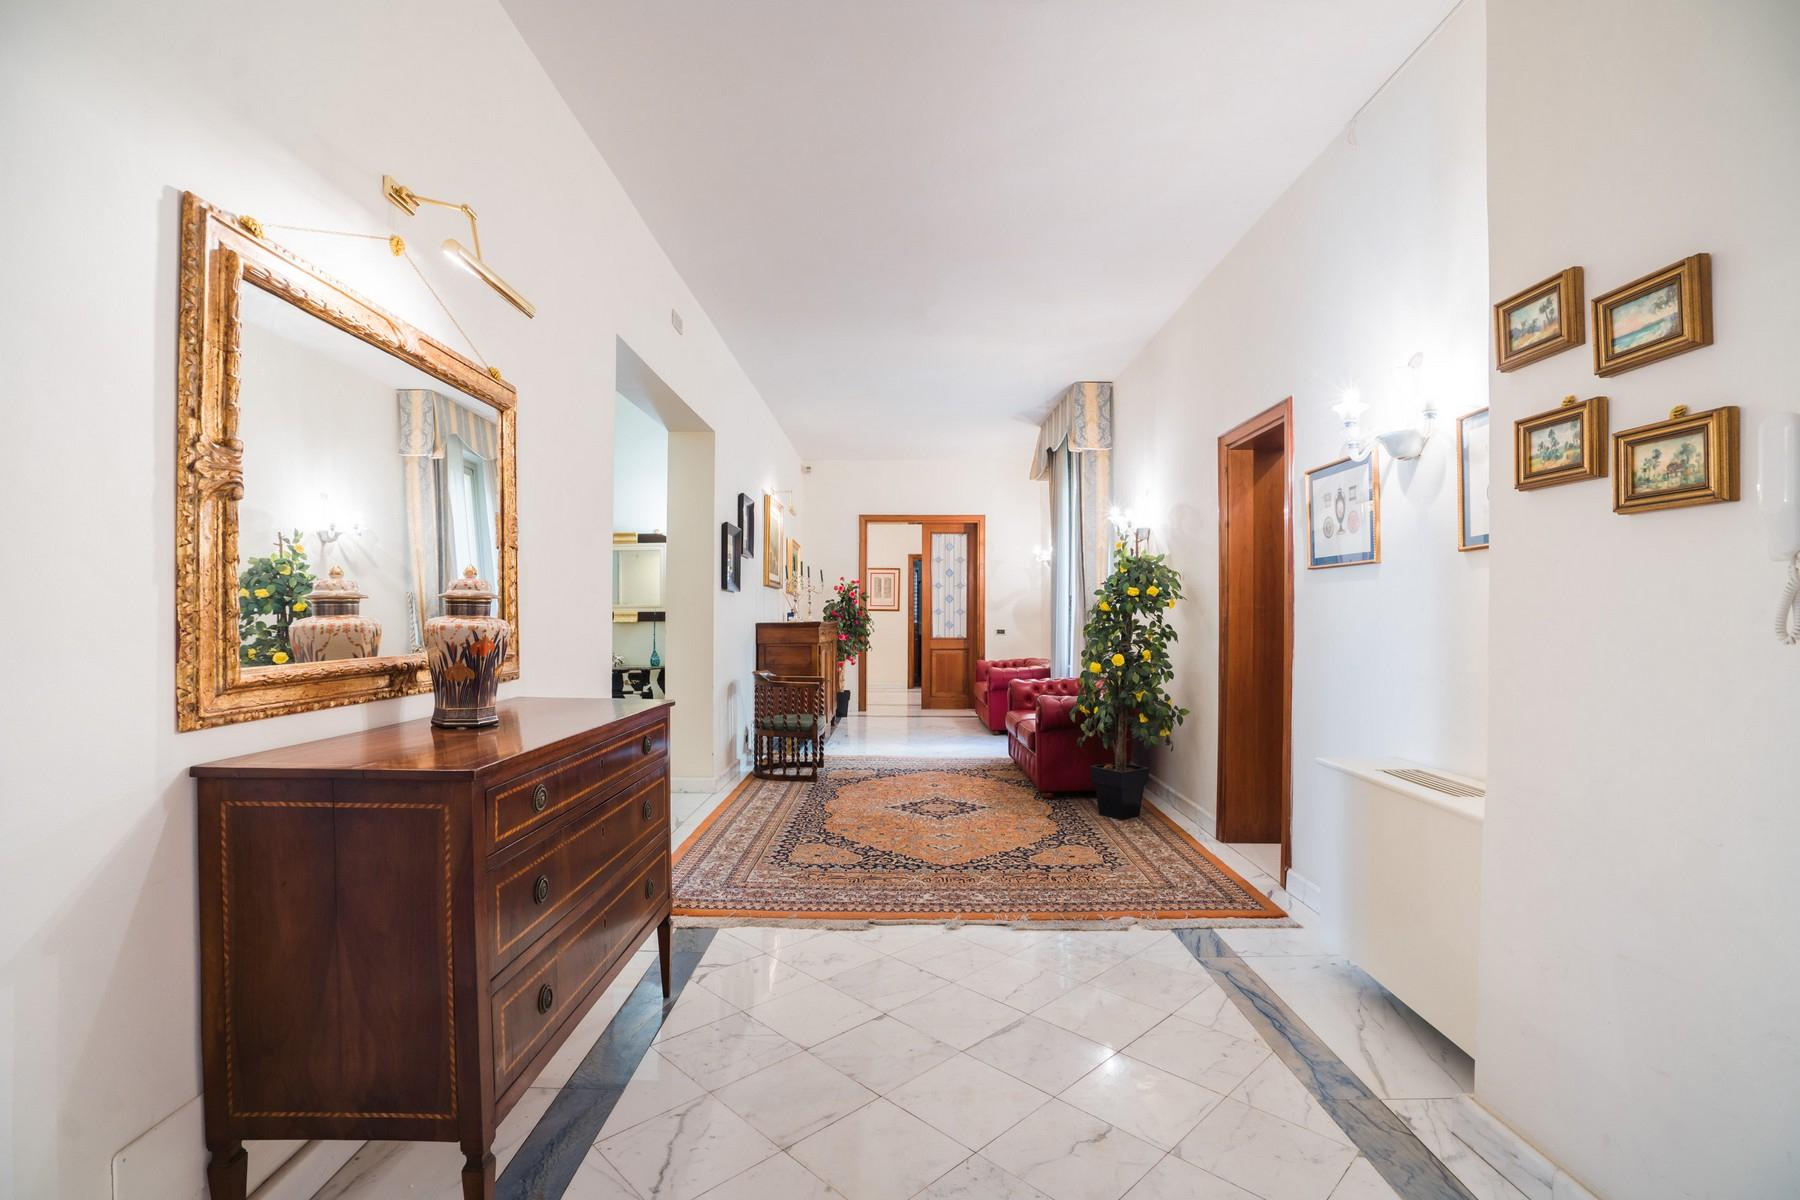 Luxury apartment overlooking the Arno River - 5